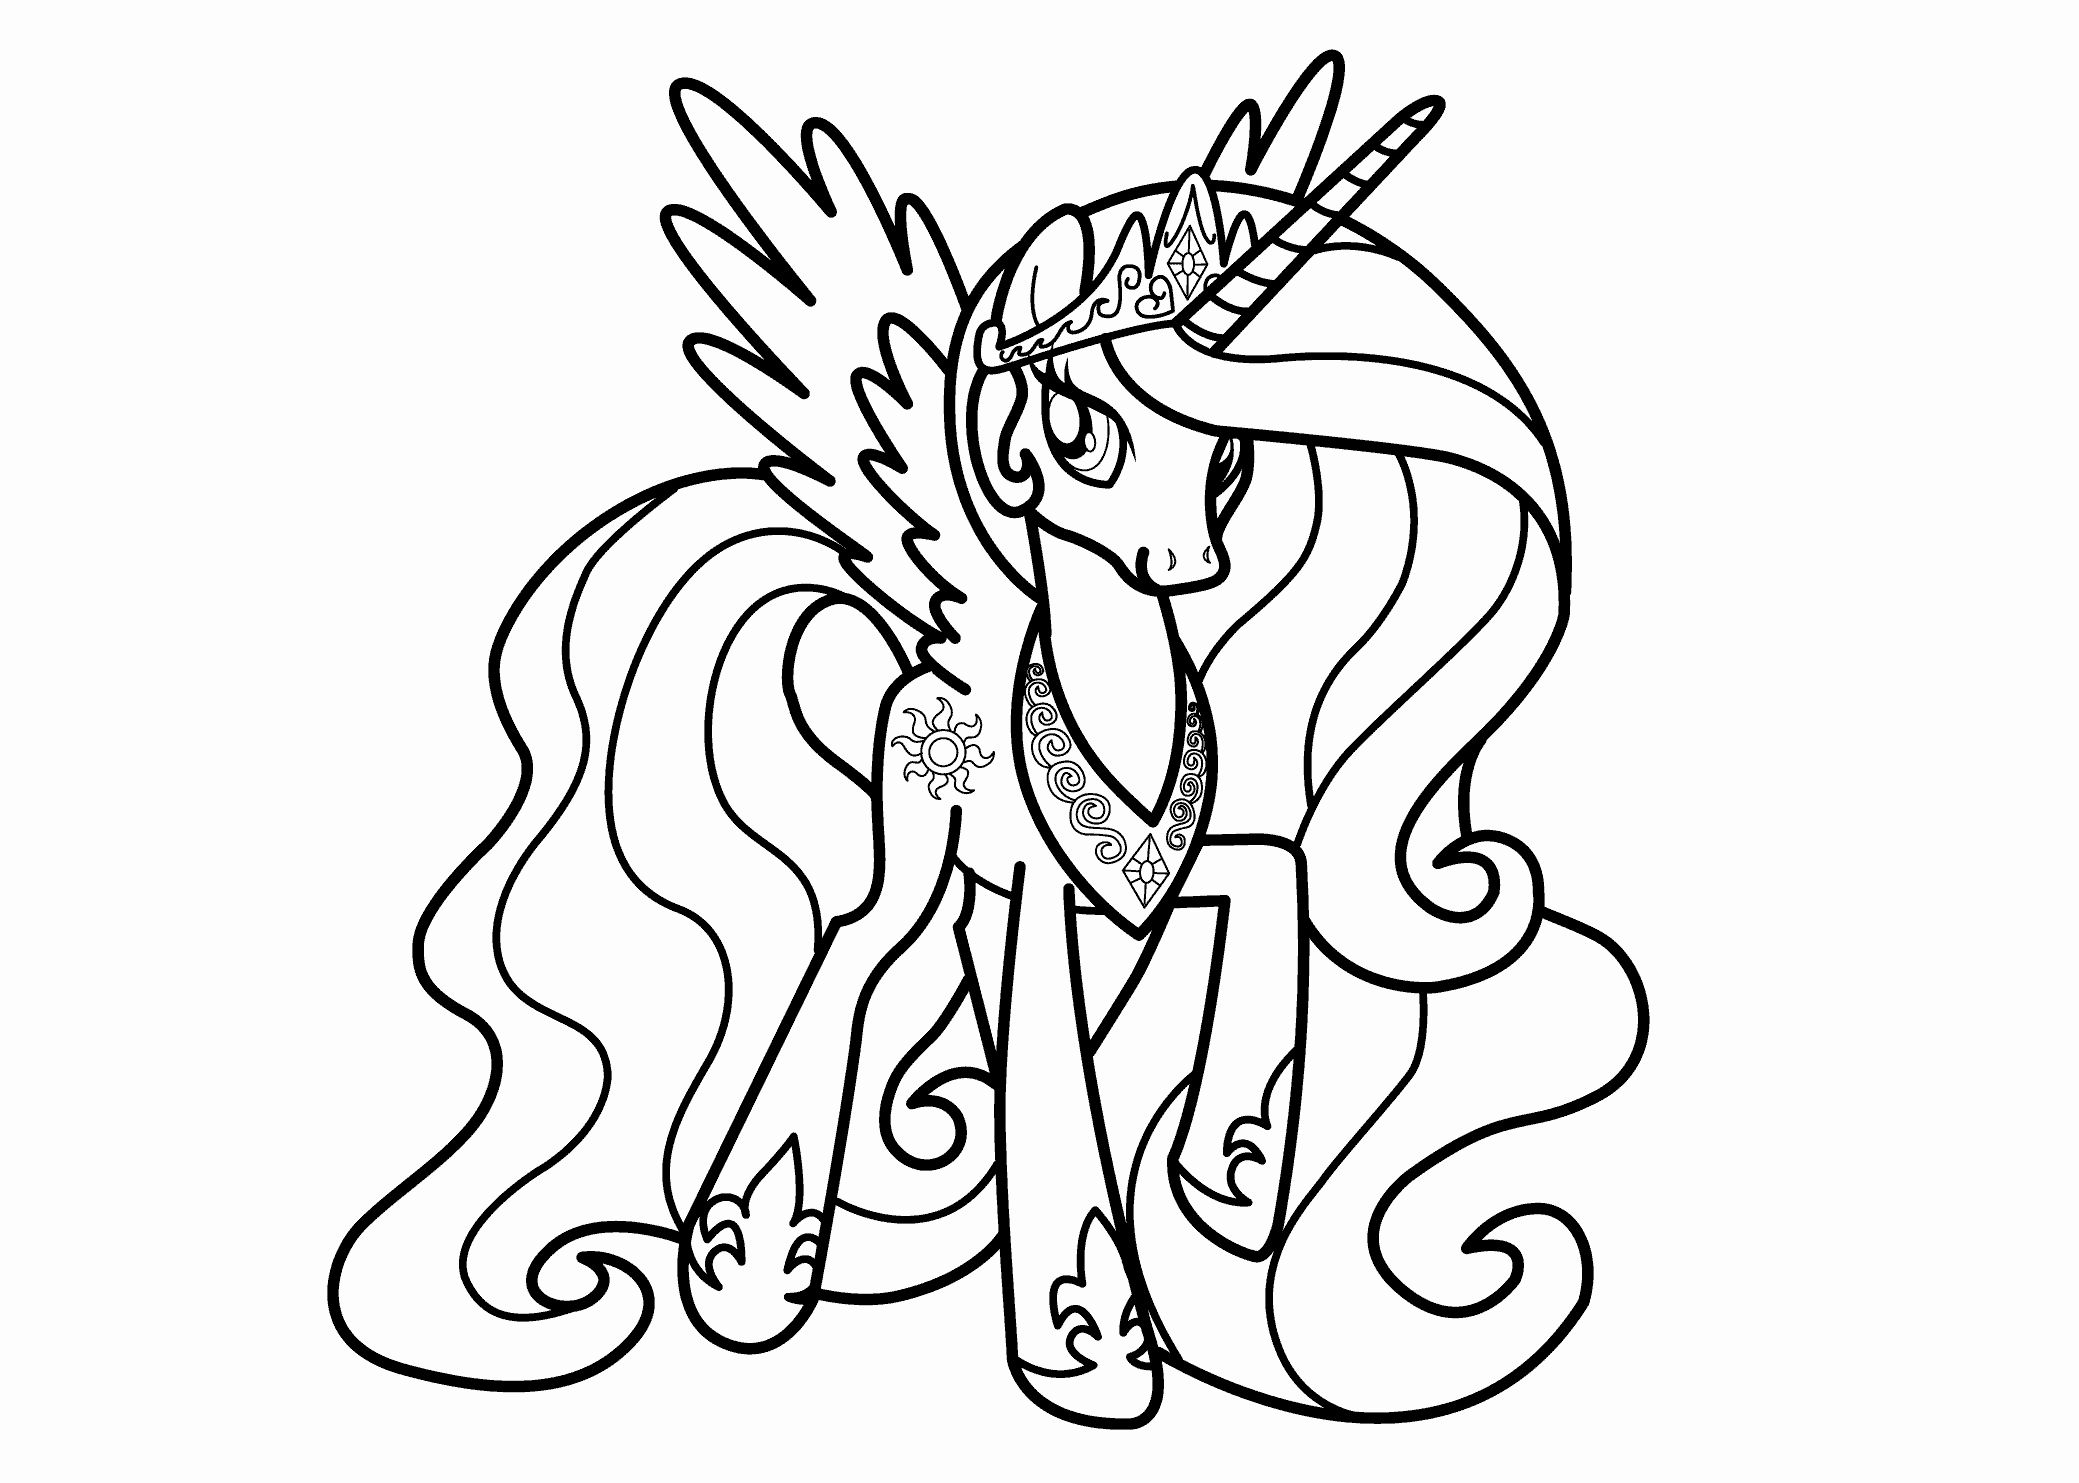 32 Princess Celestia Coloring Page Princess Coloring Pages